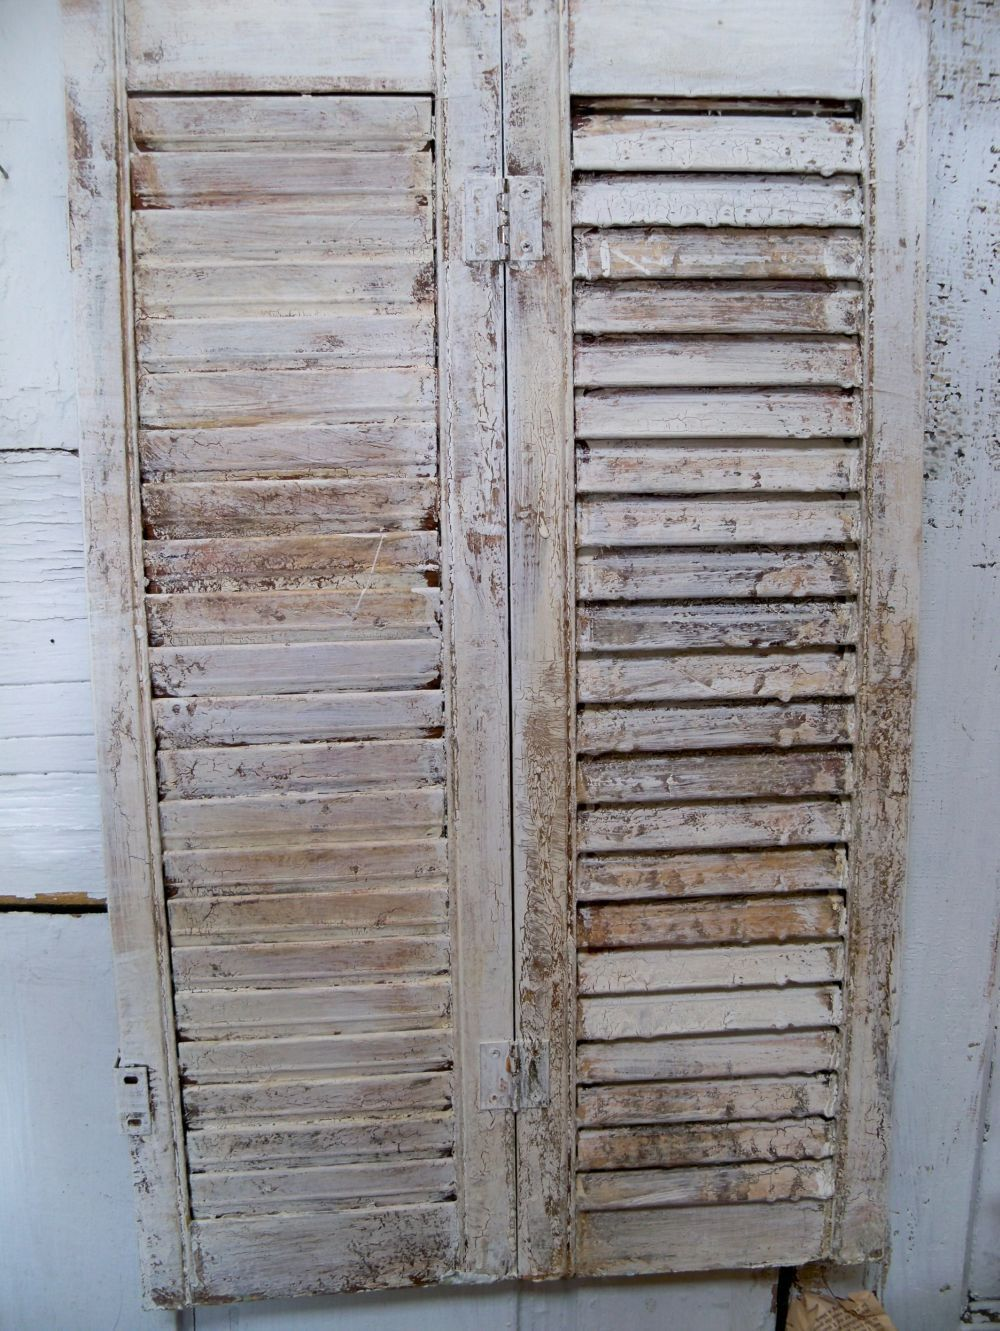 Vintage farmhouse wooden distressed shutter shabby chic home decor